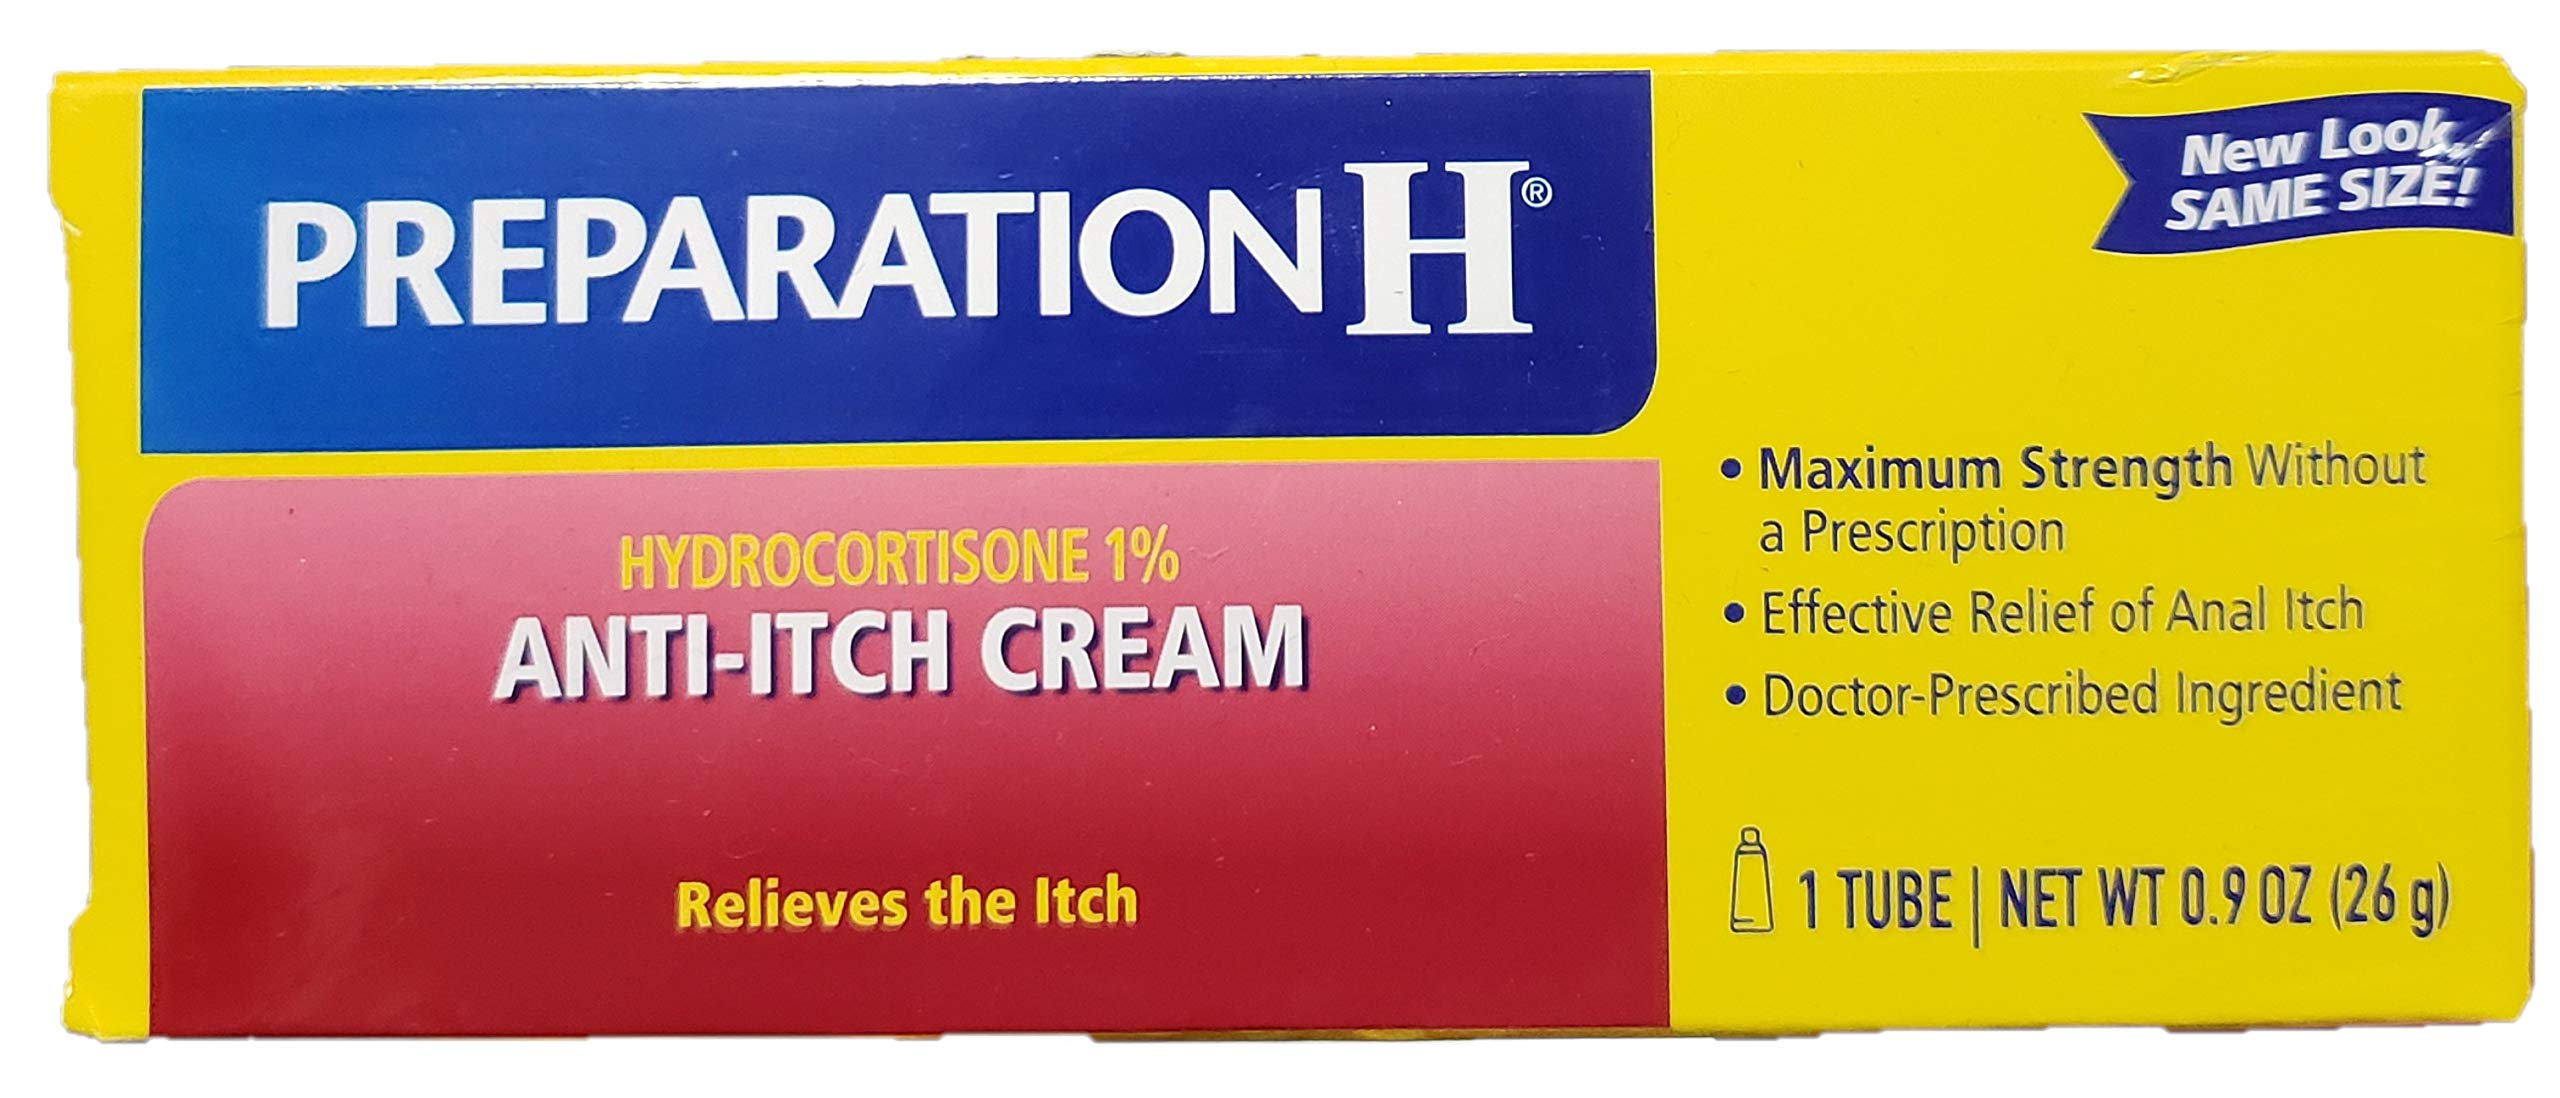 Preparation H Anti-Itch Cream Hydrocortisone 1% 0.90 oz (Pack of 4) by Preparation H